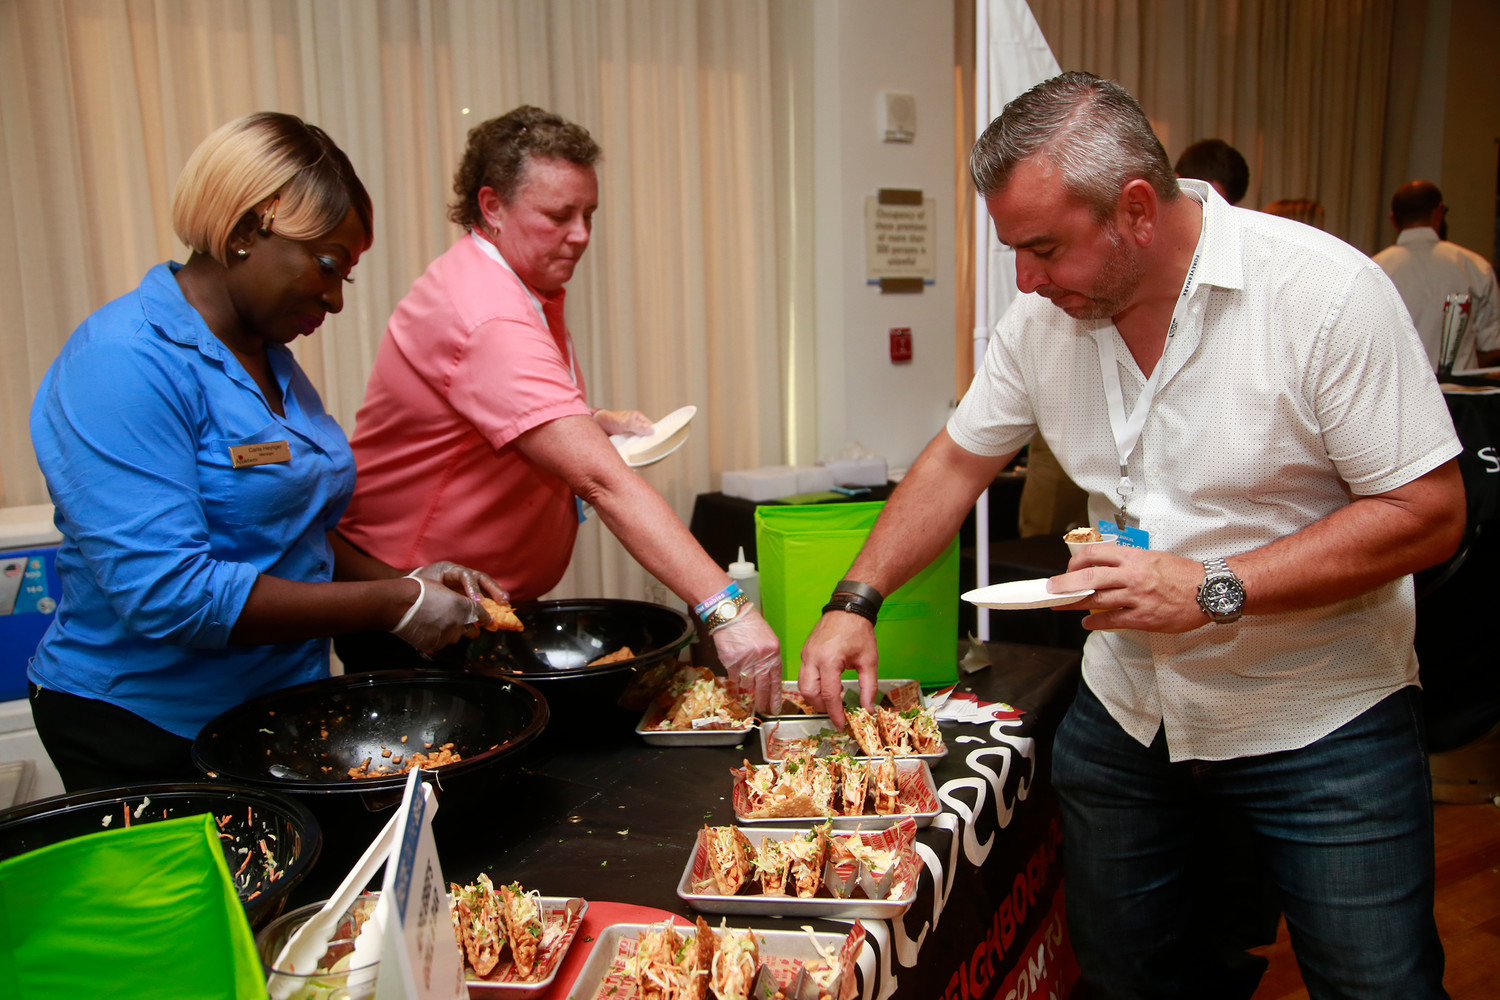 Applebee's General Manager Patricia Erskine and Carla Heyliger offered Frank Lavacca chicken wonton tacos.